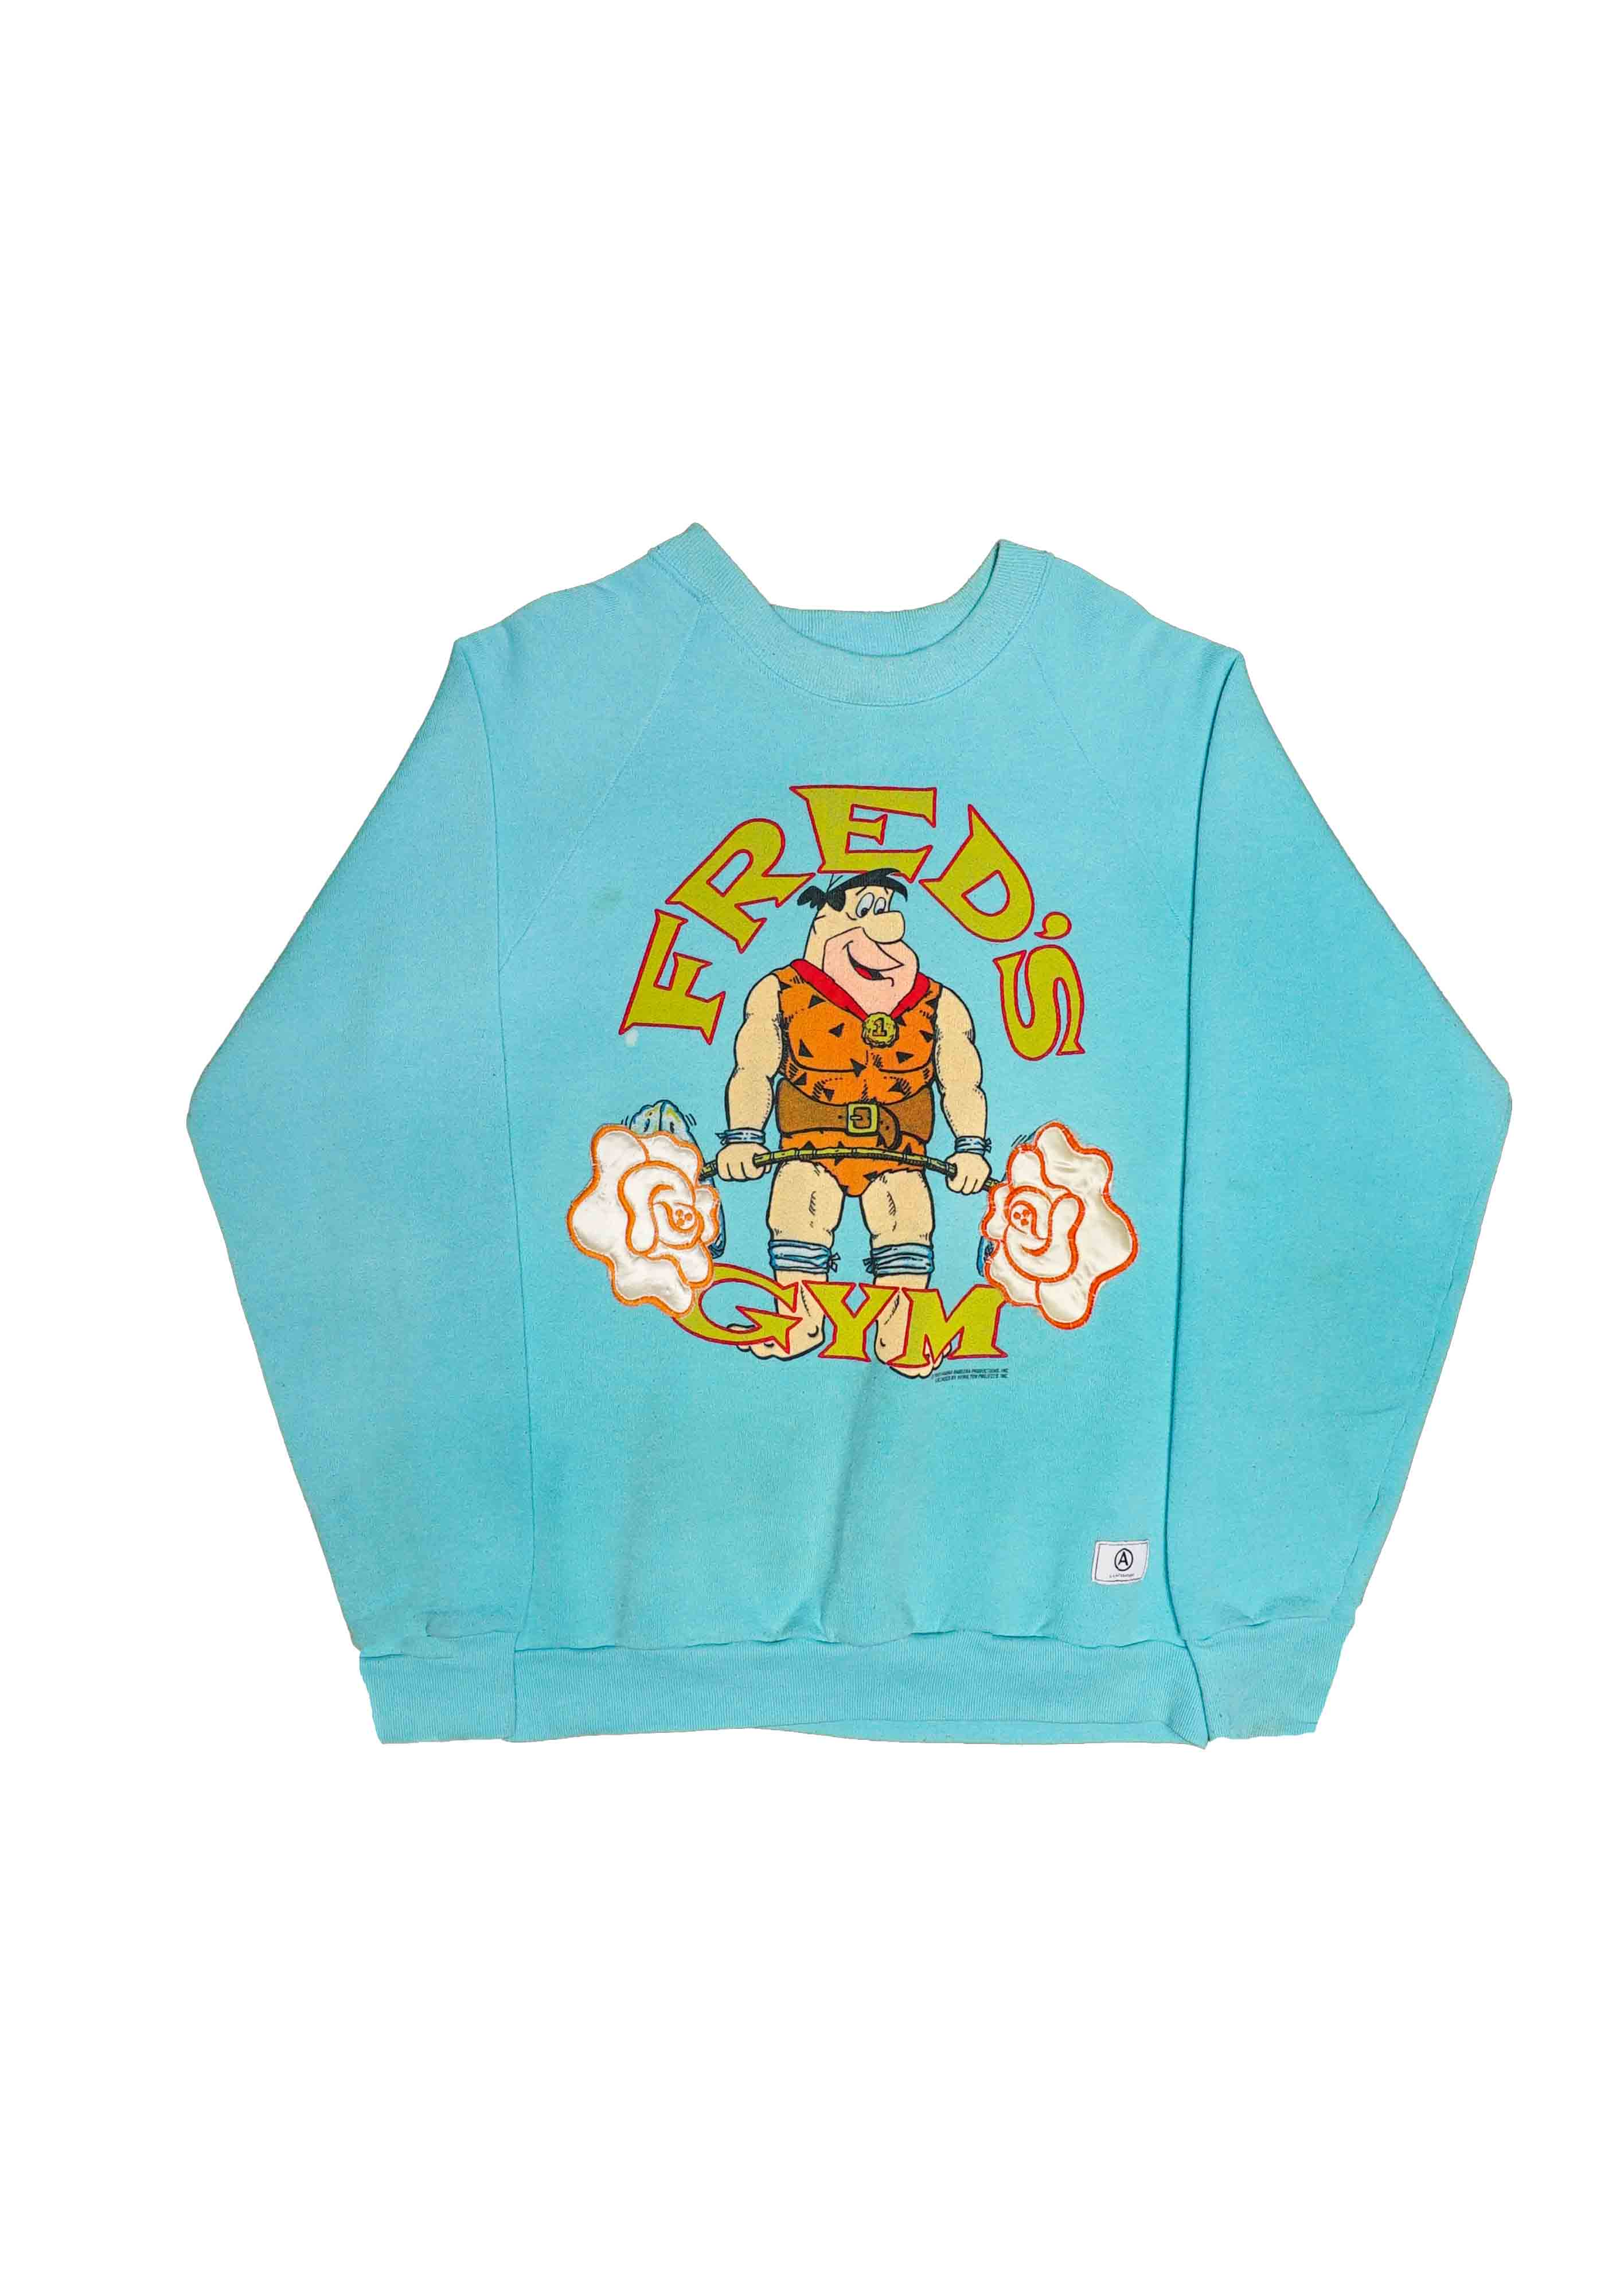 FRED FLINSTONE // US ALTERATION BLUE CREW NECK